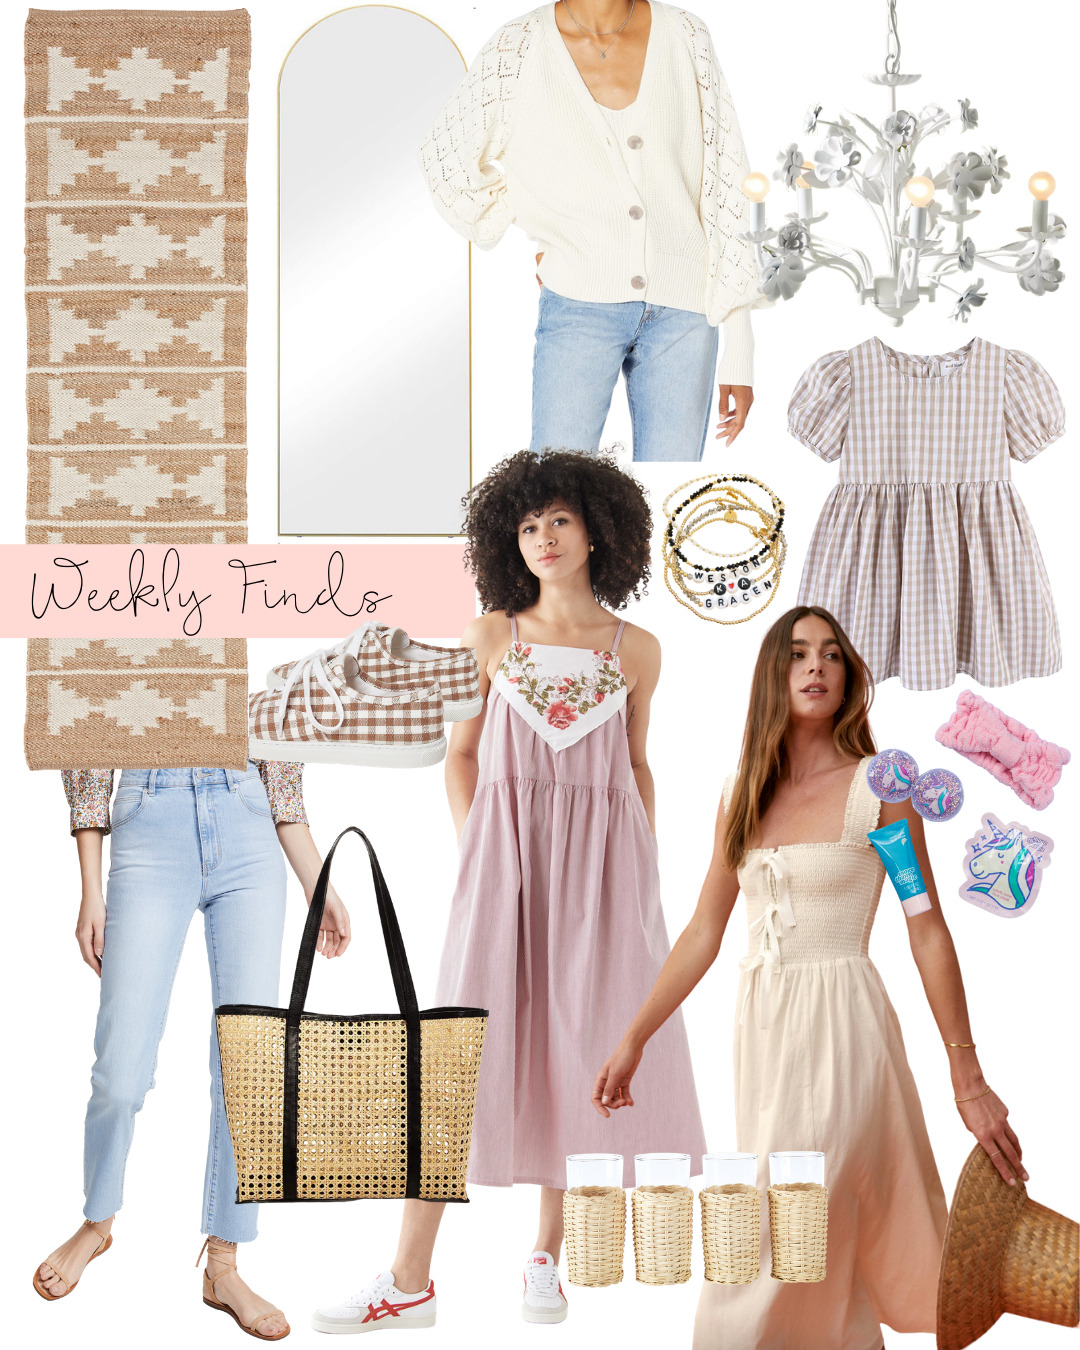 a collage of Weekly Finds + A Few Things On Our New Home Wishlist